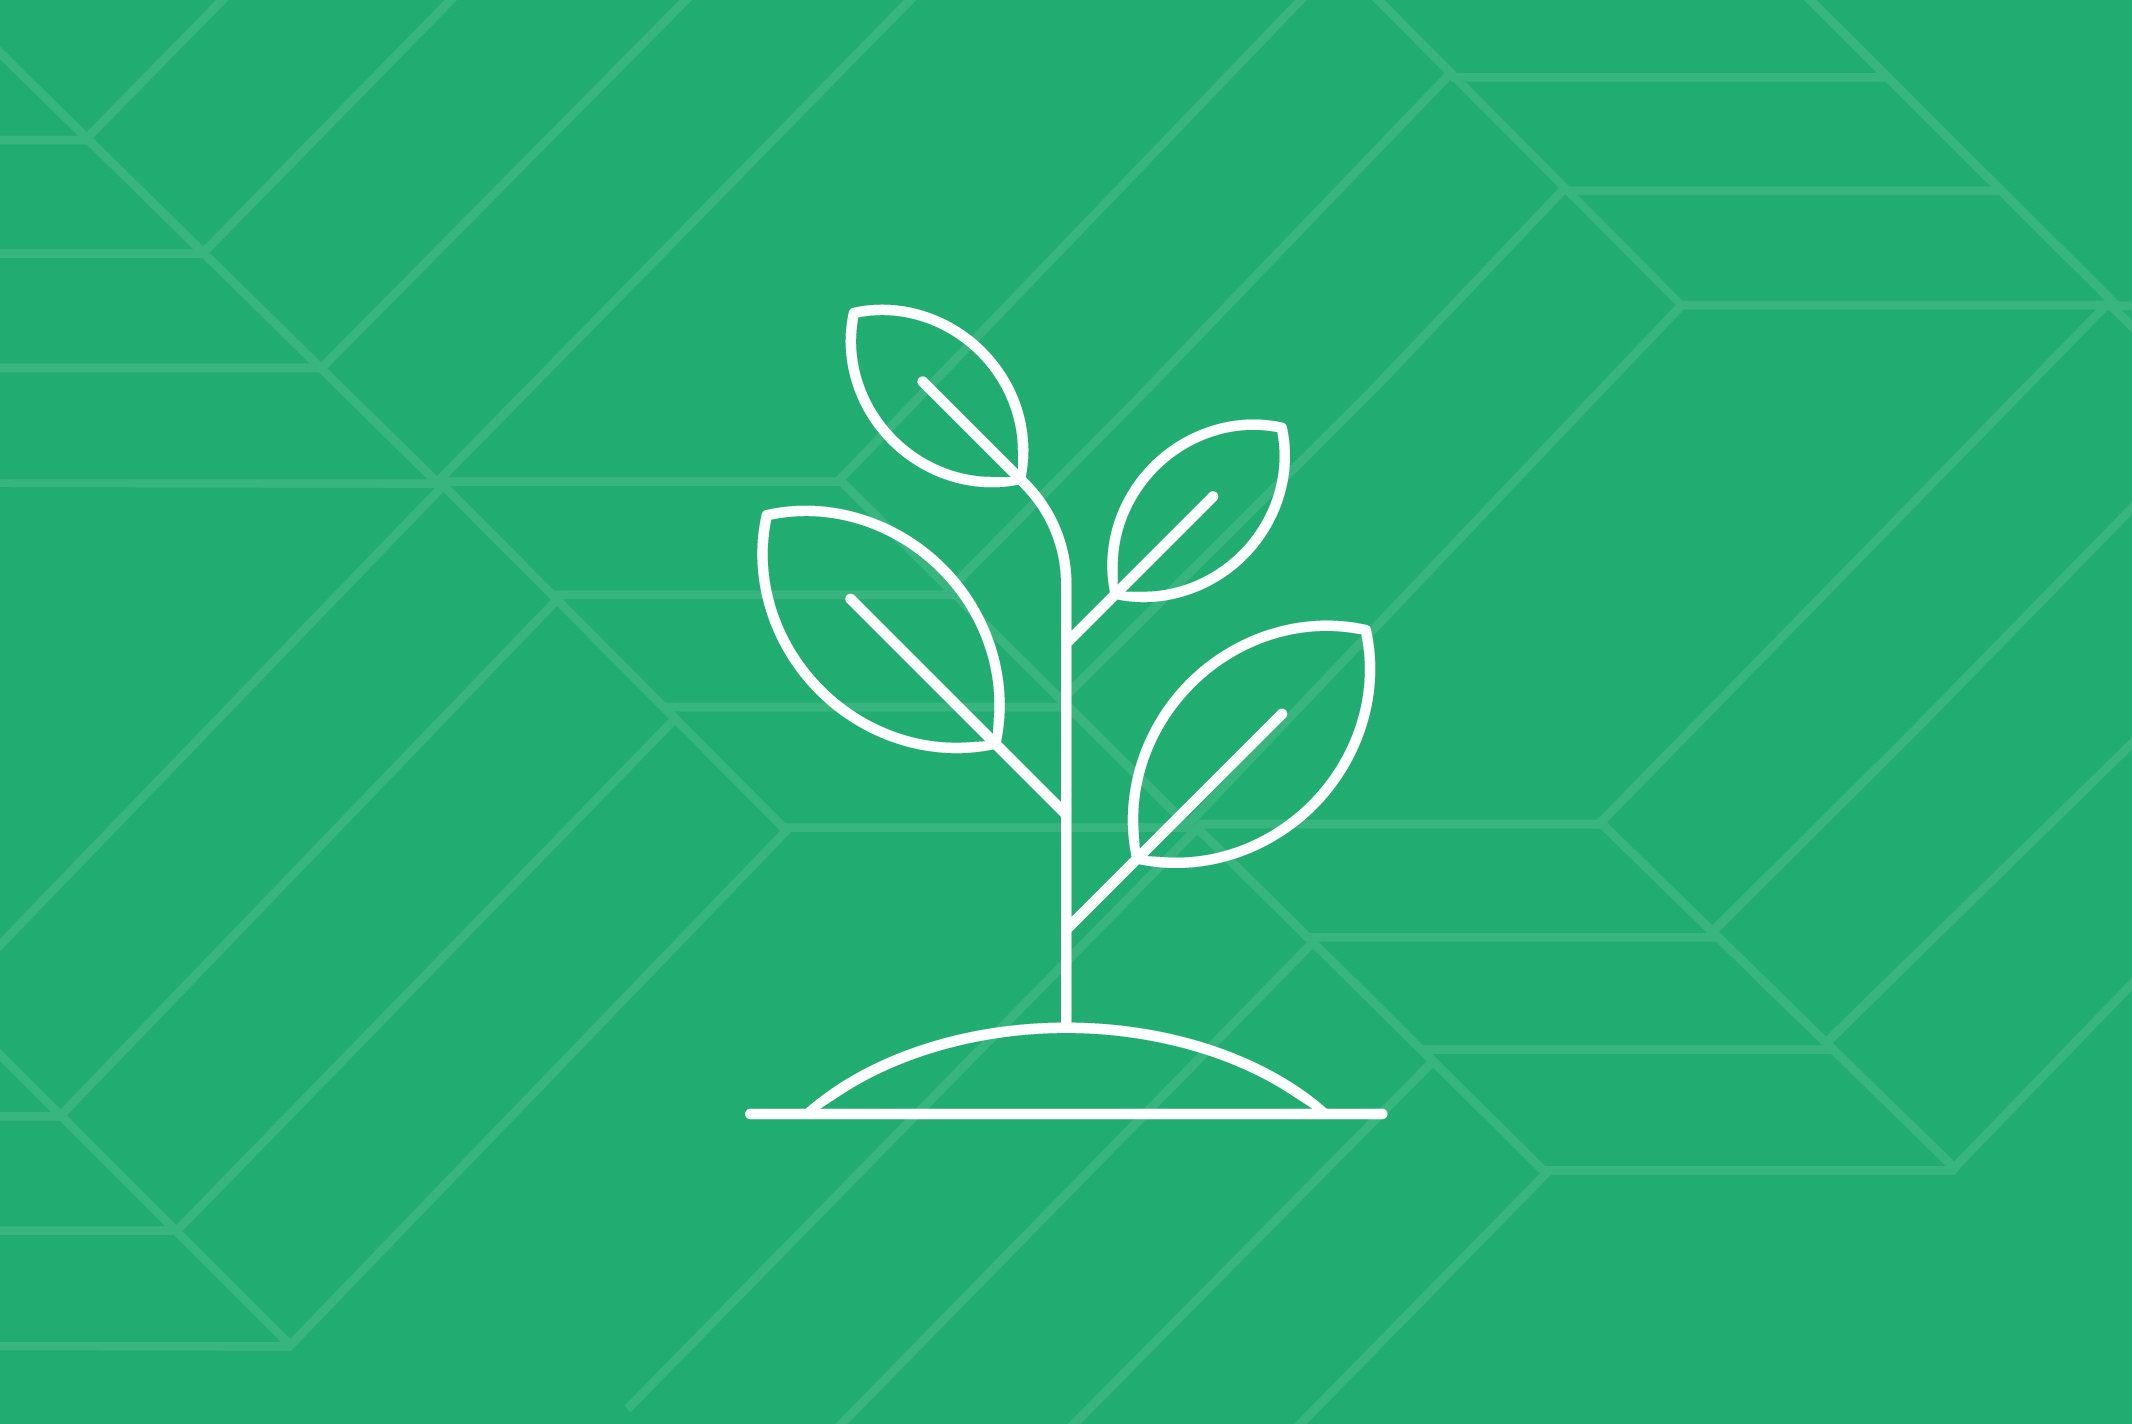 Emergent Healthcare Companies - We know startups and growth-stage companies, with their inherent challenges and opportunities. We help with their unique needs, including growth strategy, market positioning, prospect identification and market introductions.